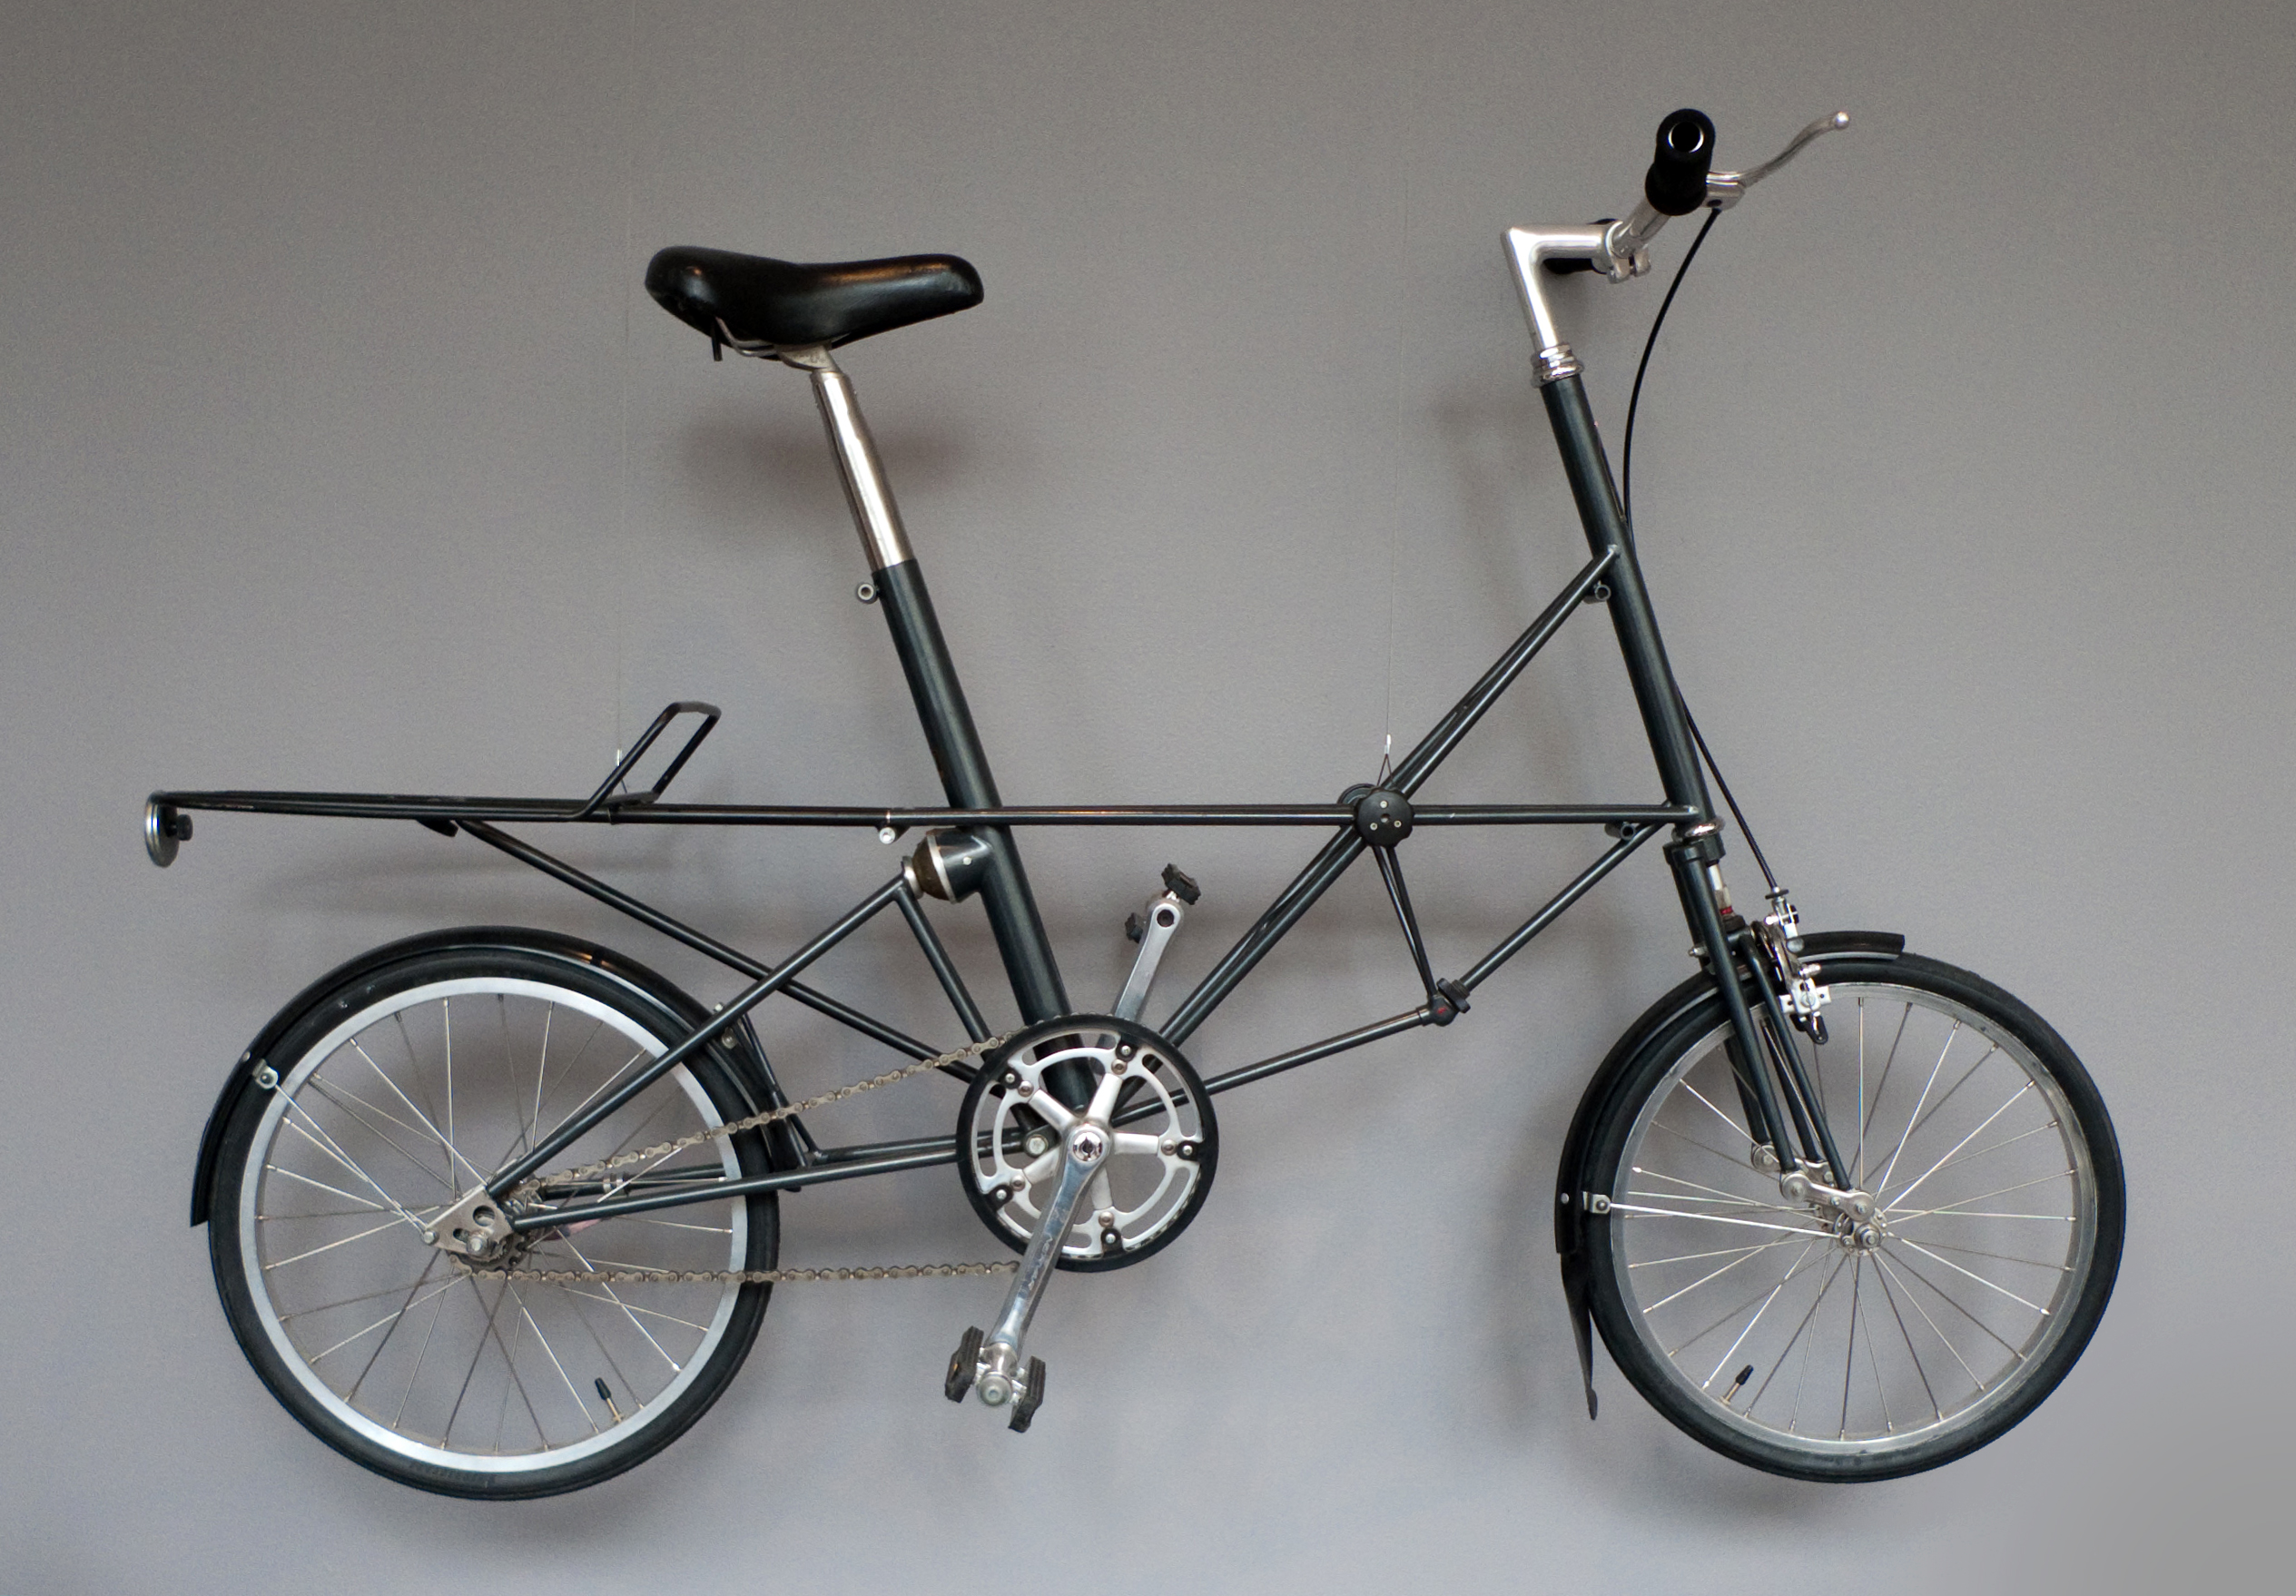 Bike to Basics: A Cargo Bicycle Design for Short-distance